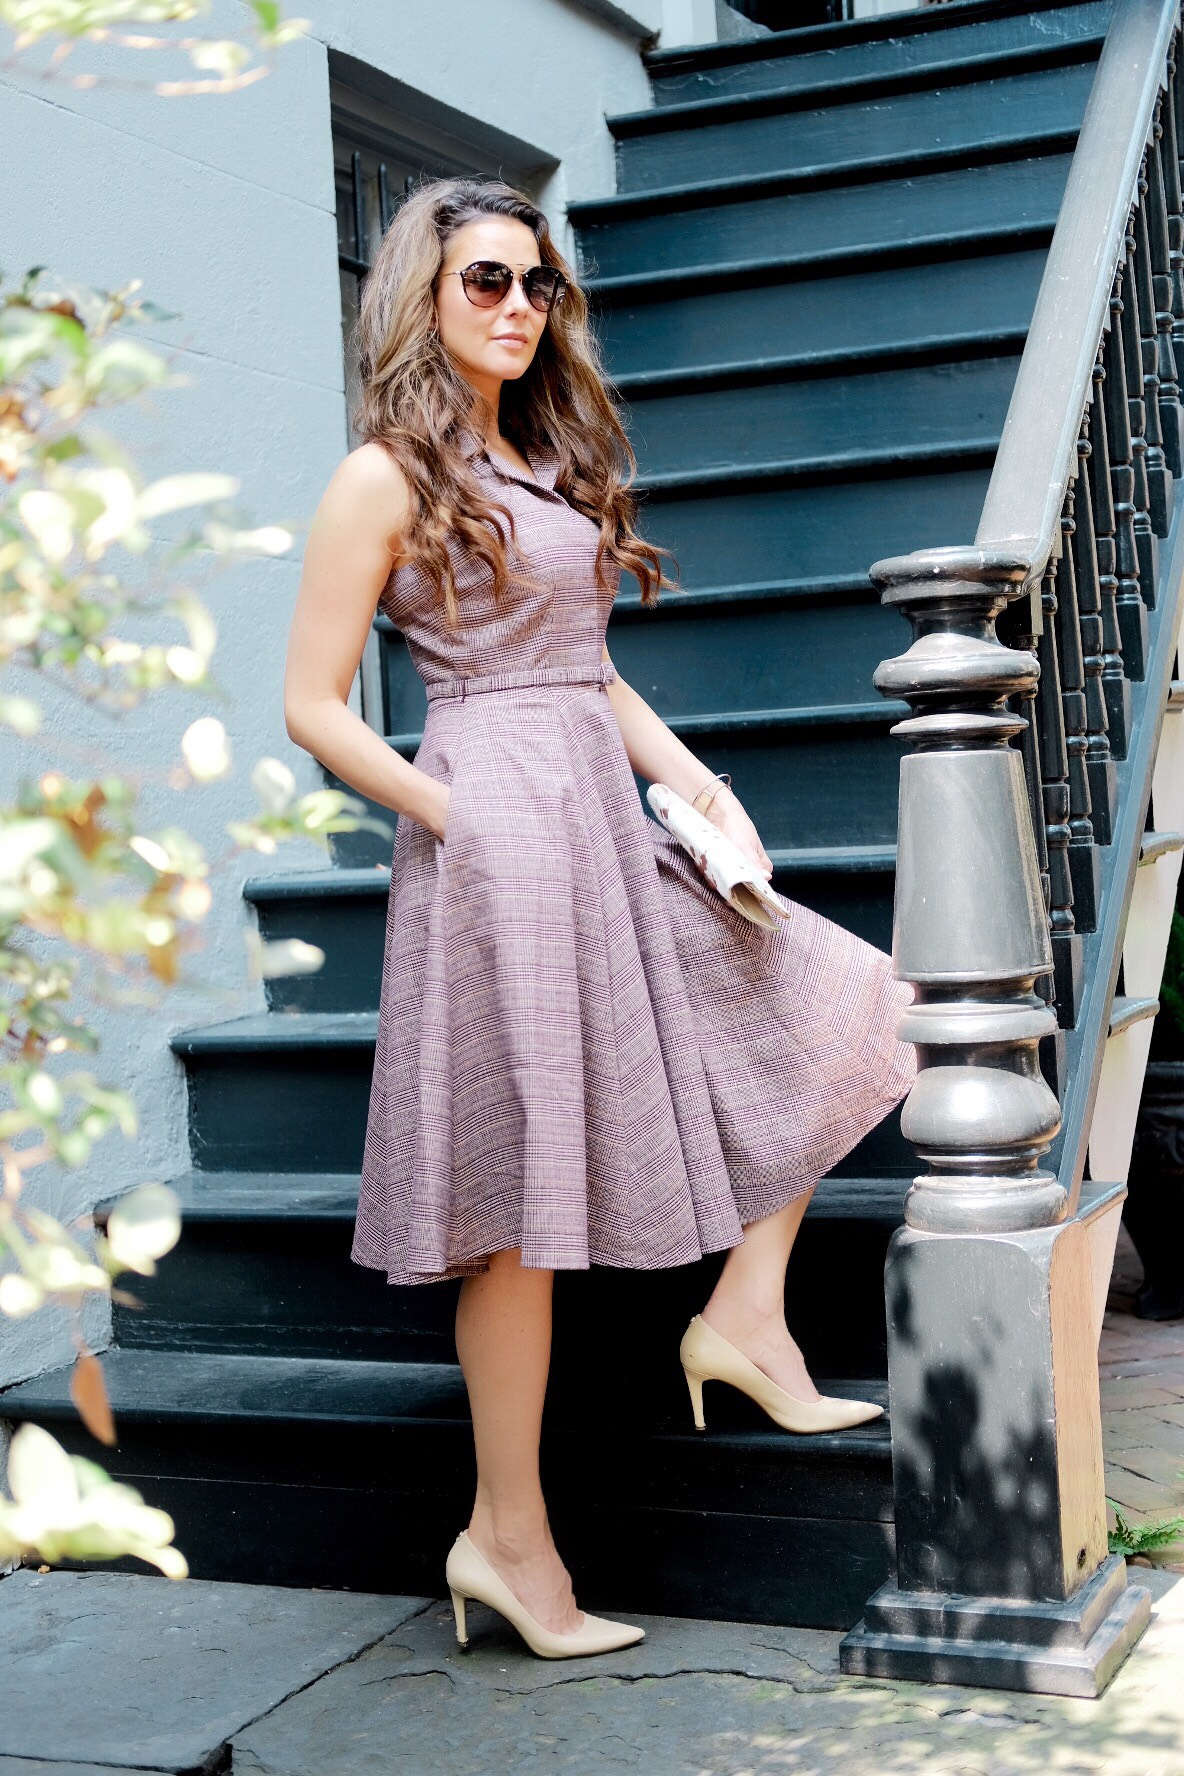 Brenna Lauren in Gal Meets Glam Dress in Savannah, Georgia